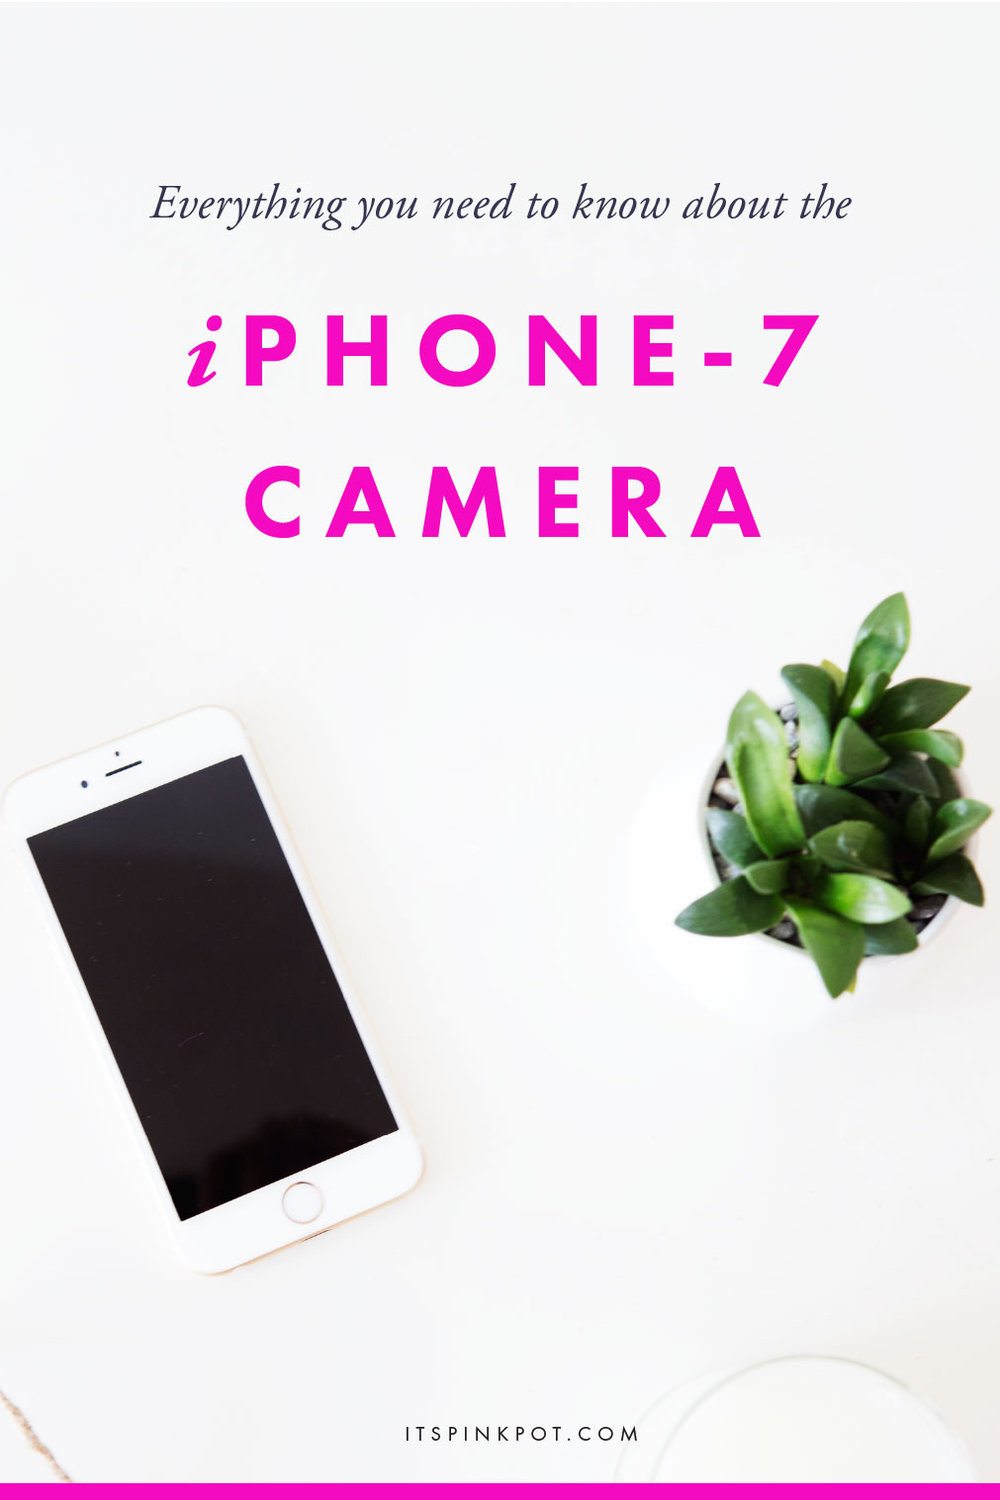 Deciding wherther or not to upgrade to the next iPhone 7 or 7 plus? Here's everything you need t o know about the new iPhone camera